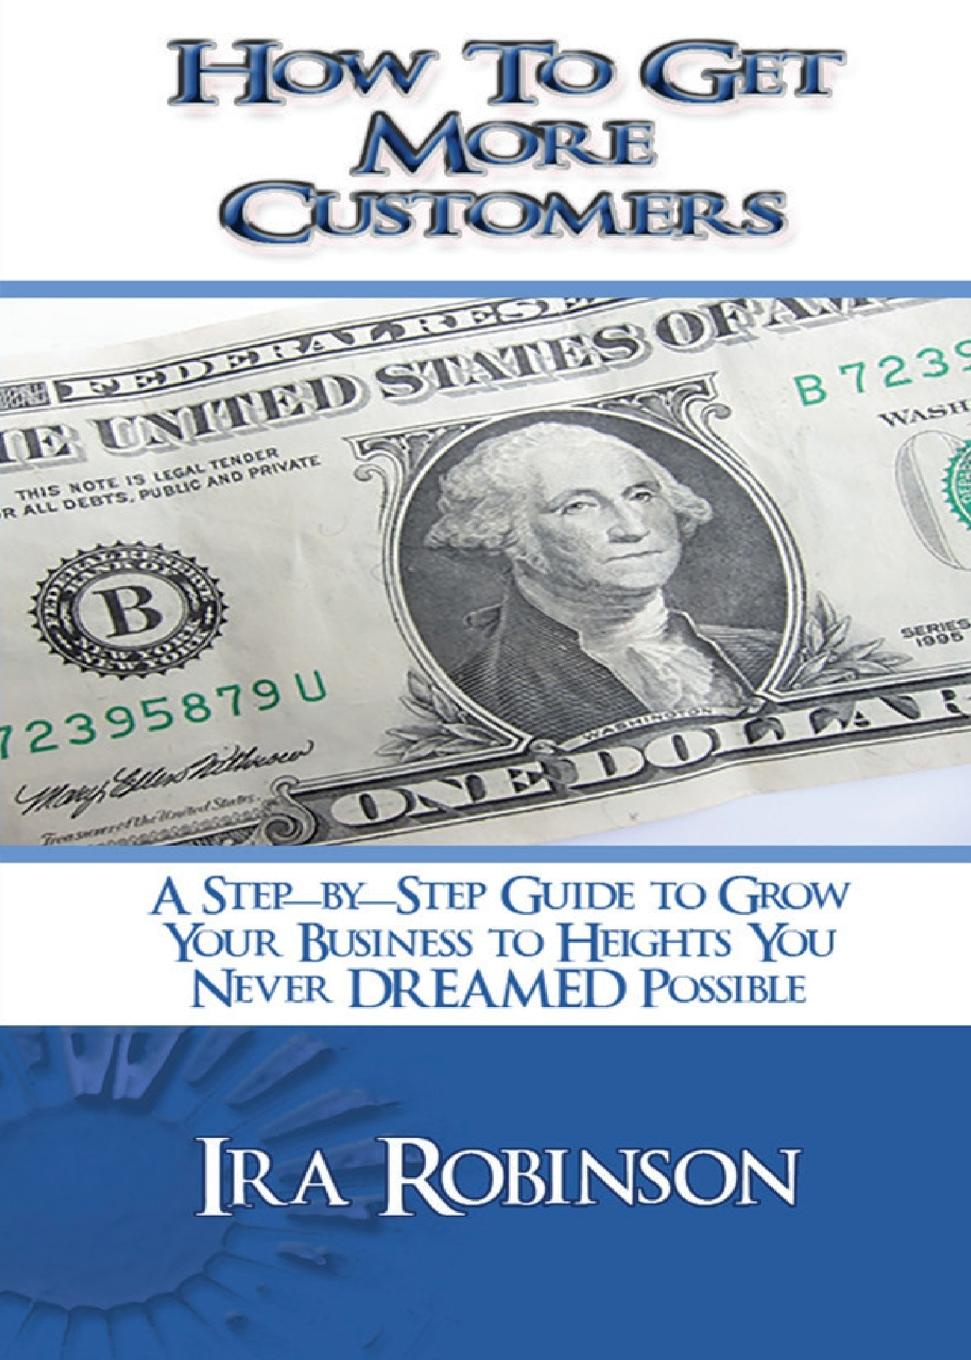 Фото - Ira Robinson How To Get More Customers. Better Business Builder Series Book 2 pieter k de villiers barefoot business 3 key systems to attract more leads win more sales and delight more customers without your business killing you